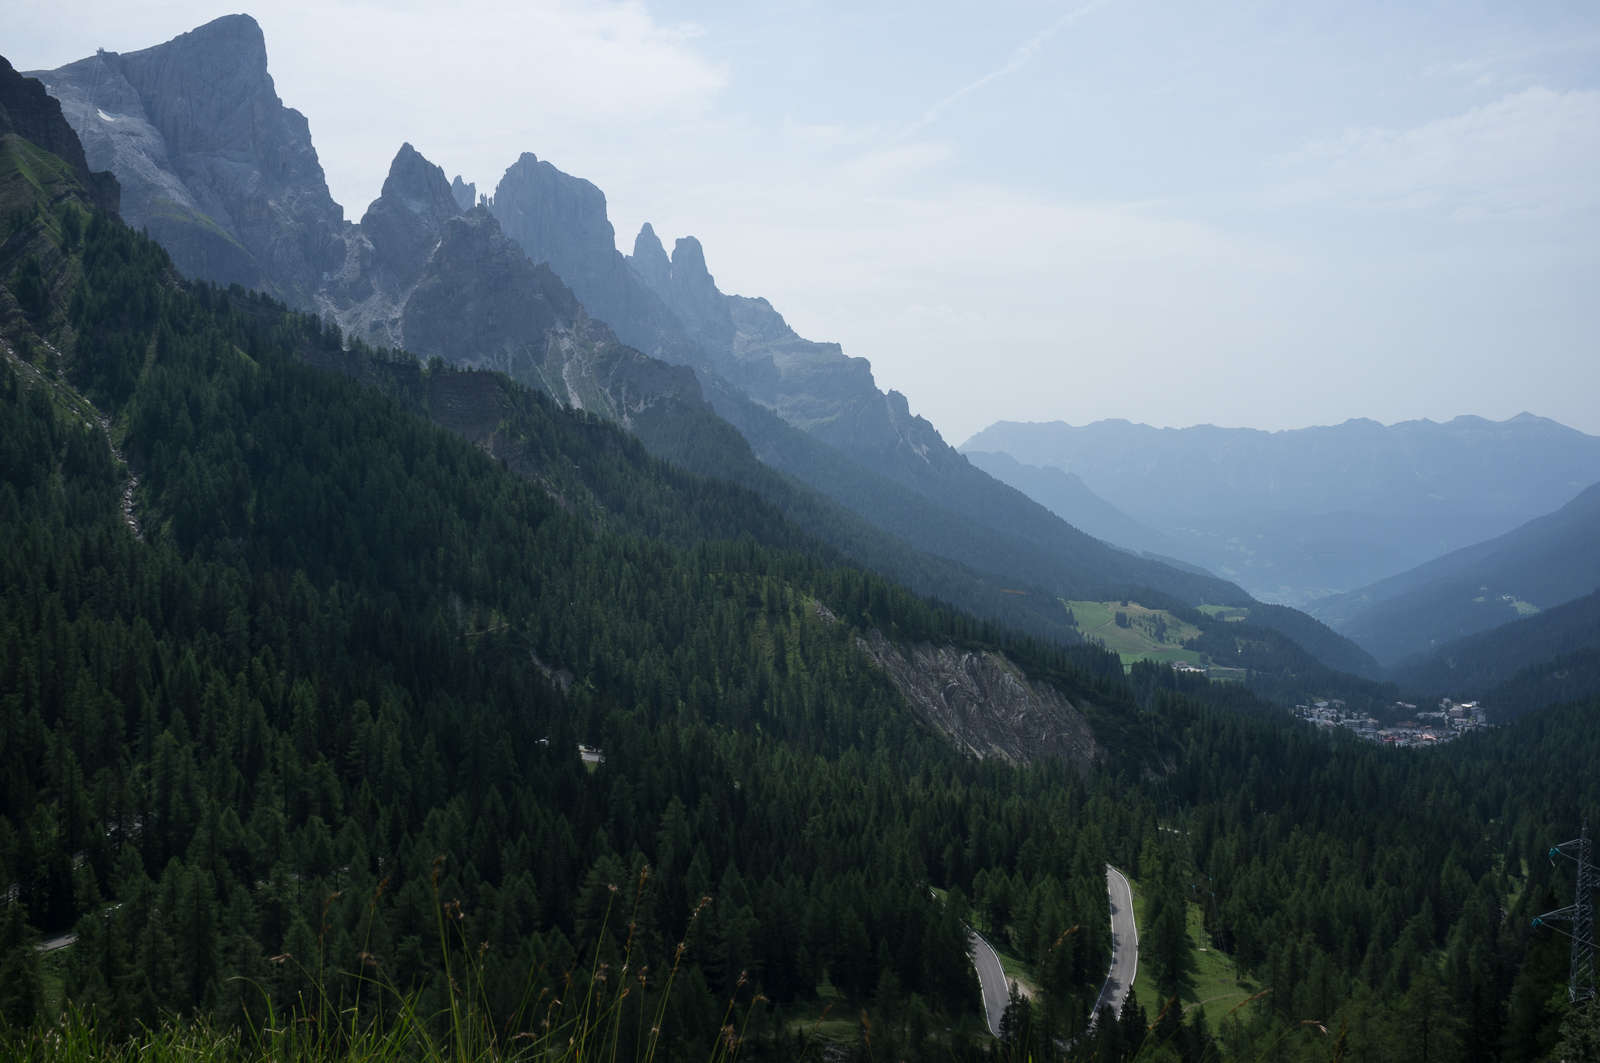 The road up to Passo Rolle (mountain pass)